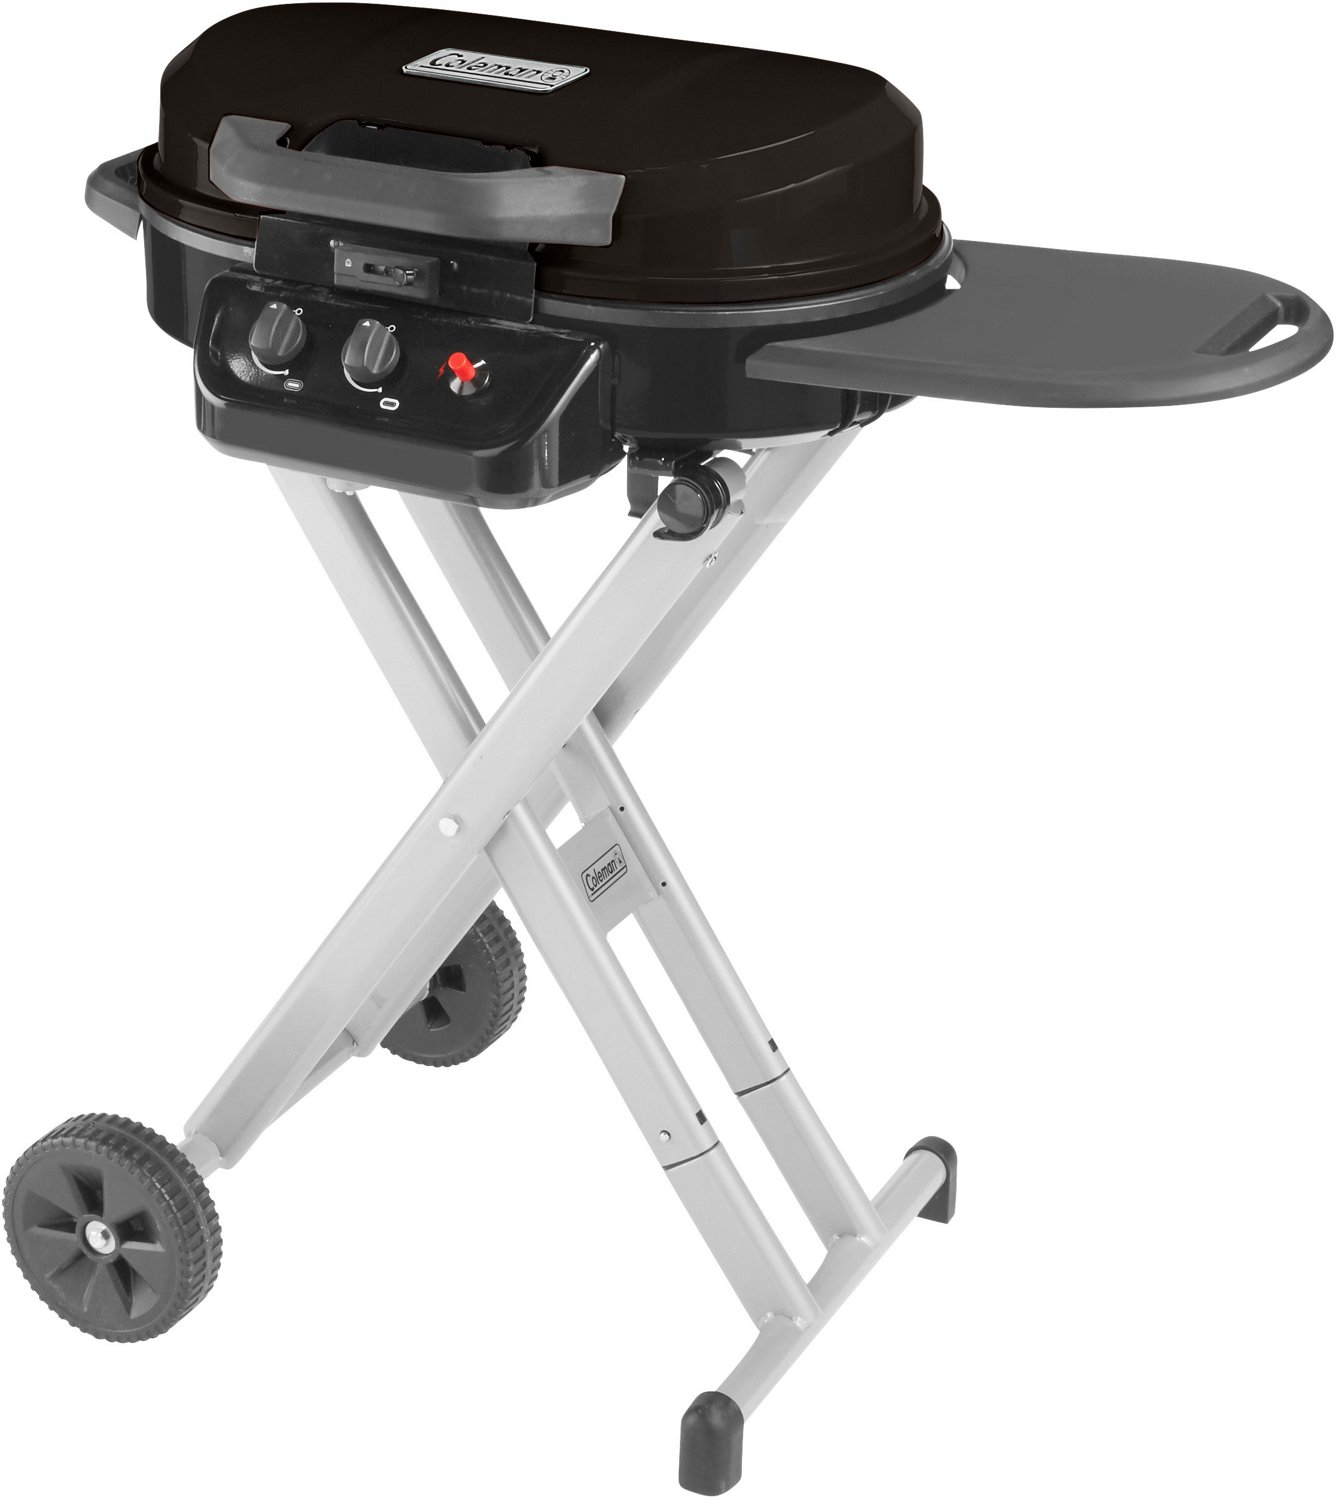 Coleman RoadTrip 225 Portable Stand-Up Propane Grill | Academy